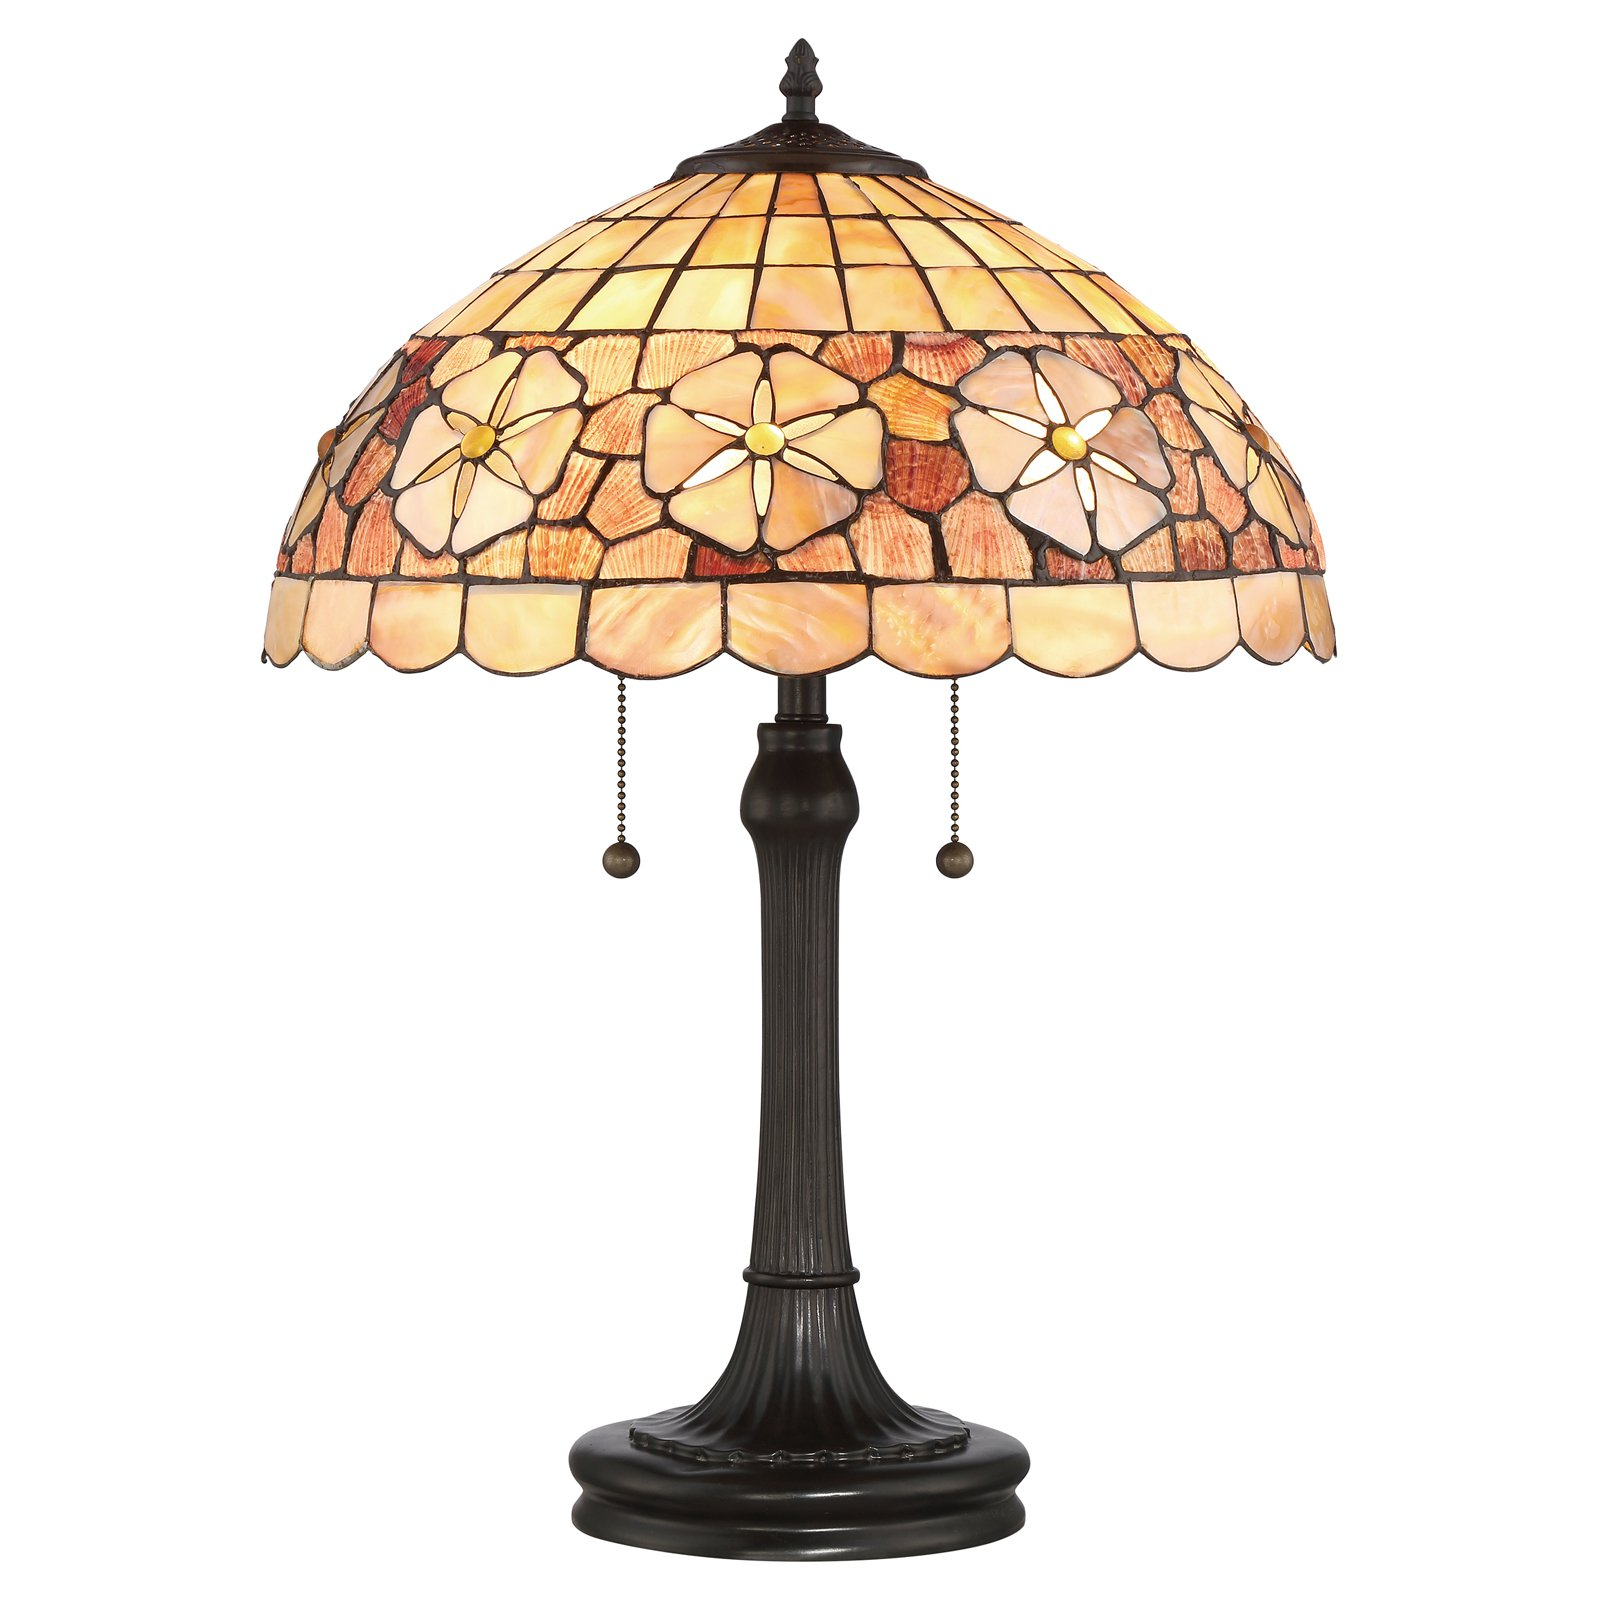 Quoizel Sea Shell Collection Sanibel Desk Lamp